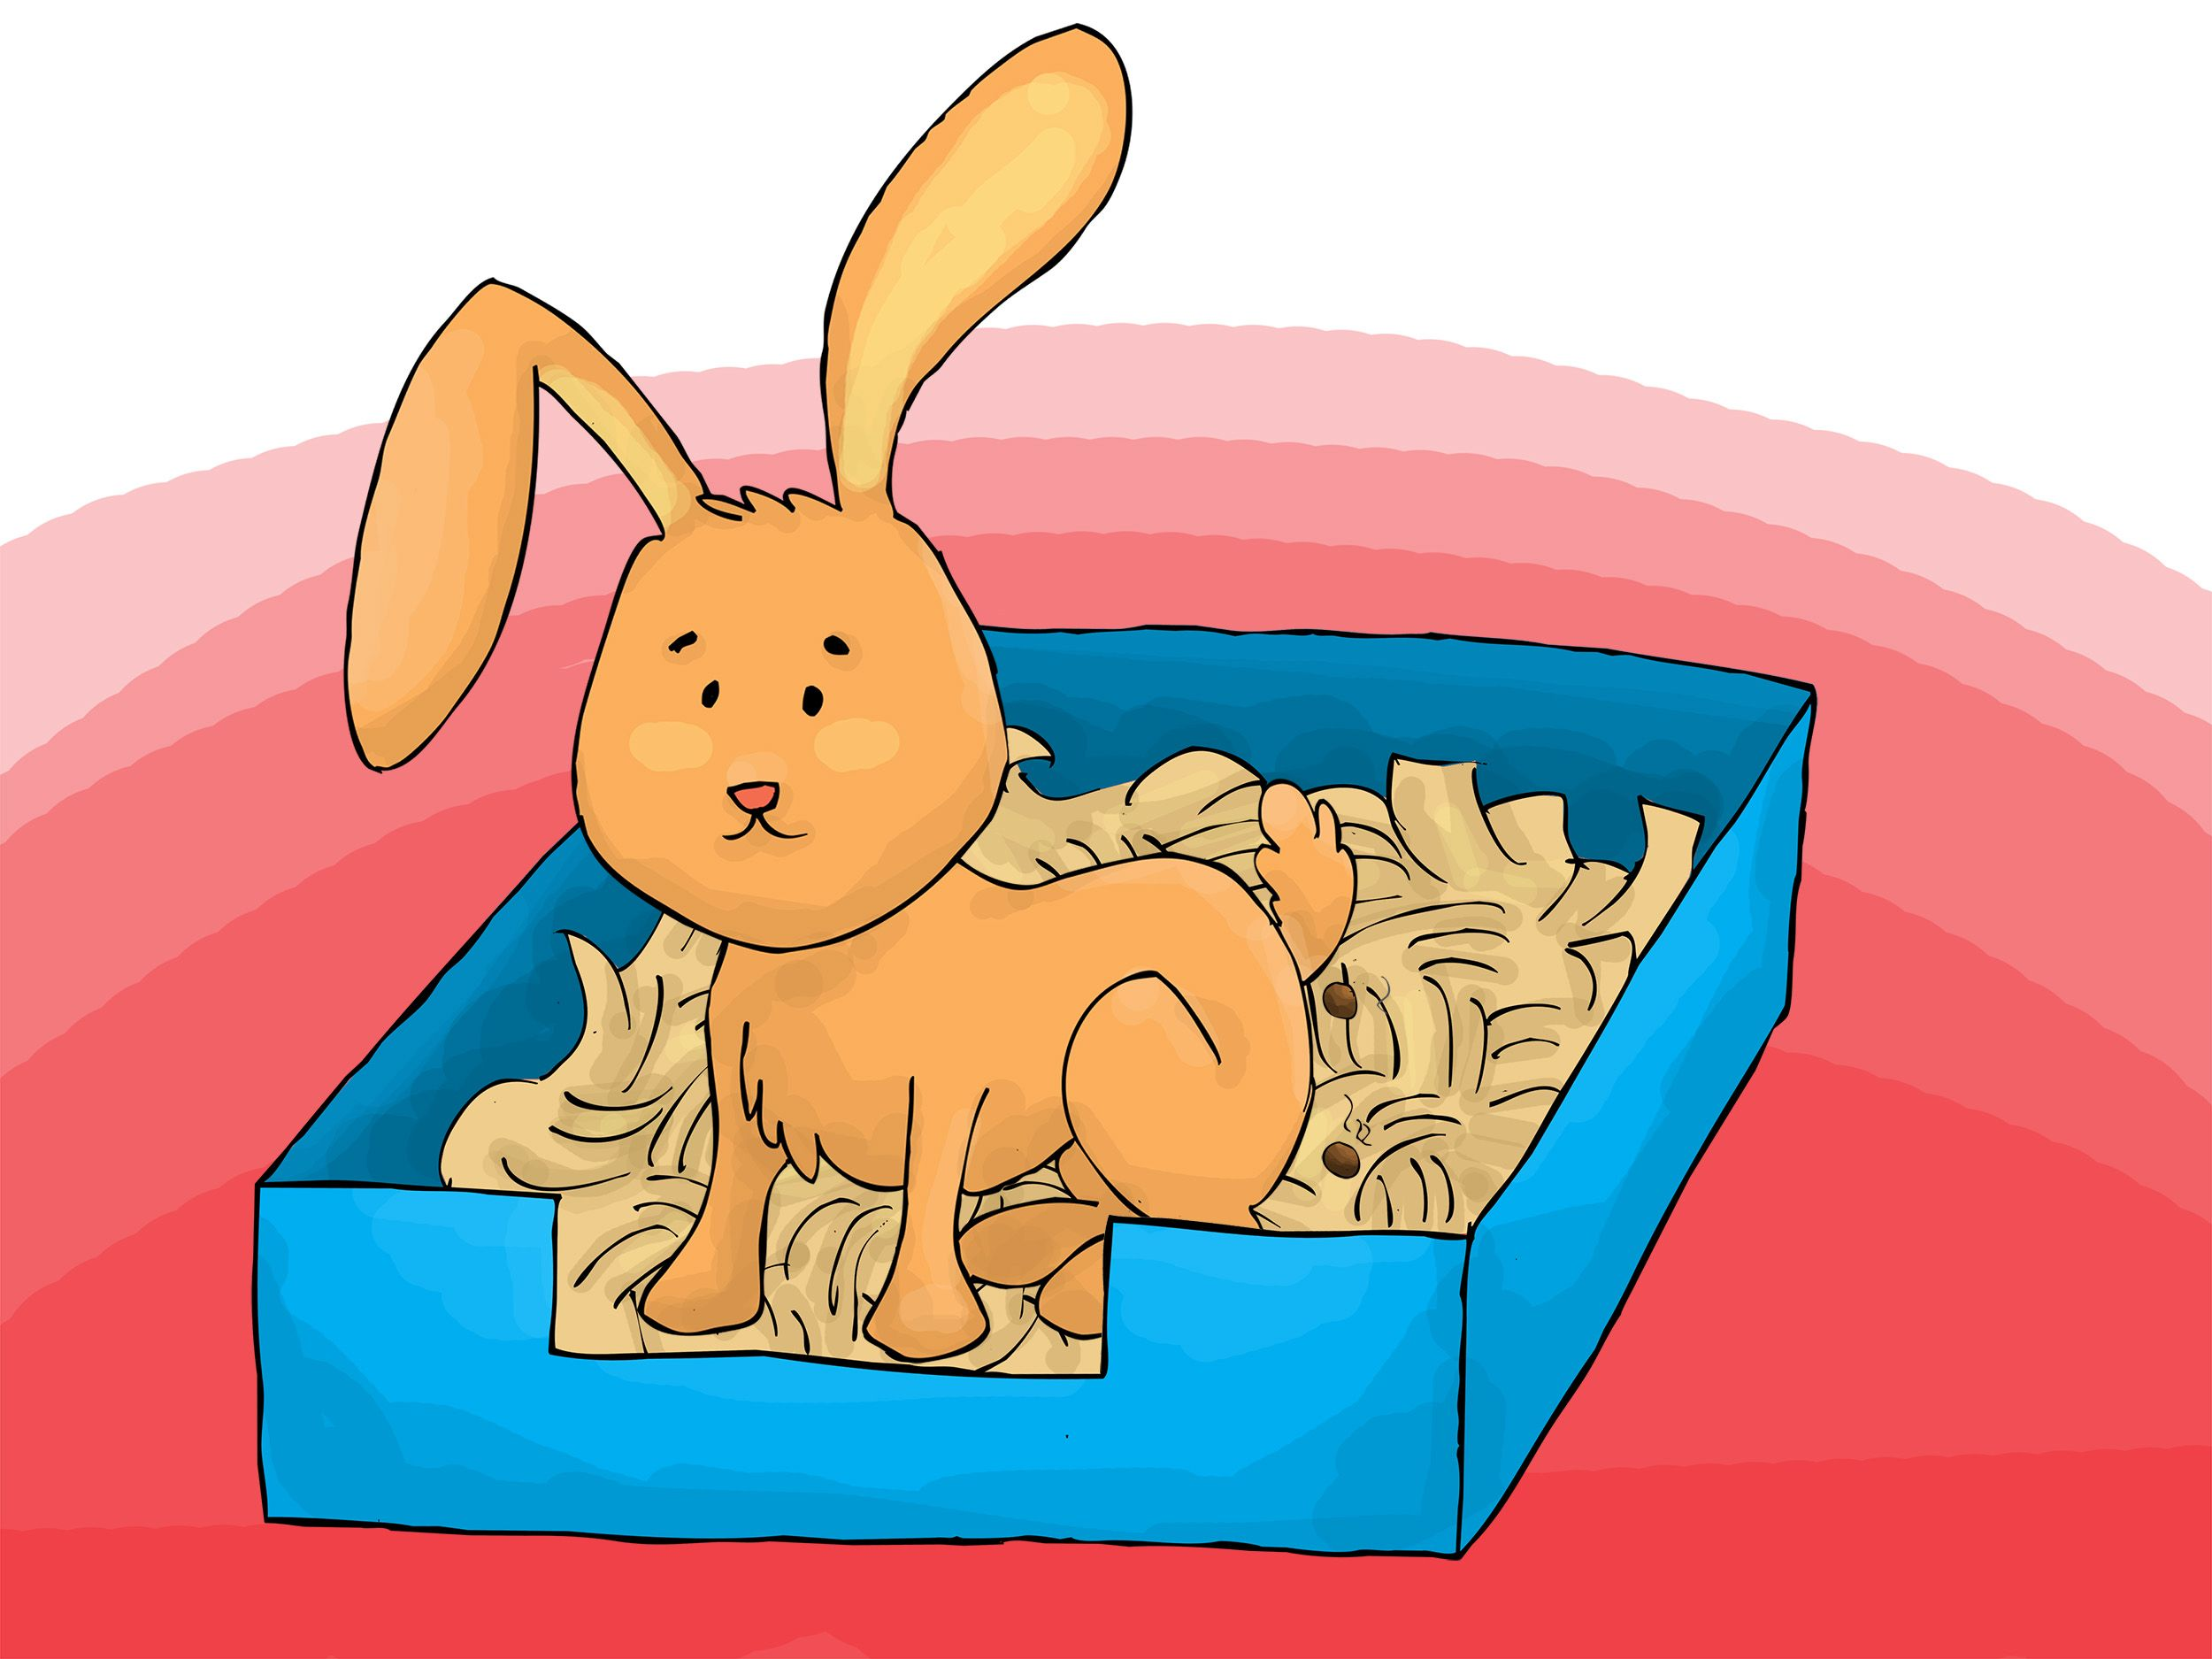 Forum on this topic: WikiHow:The Bunny Project, wikihow-the-bunny-project/